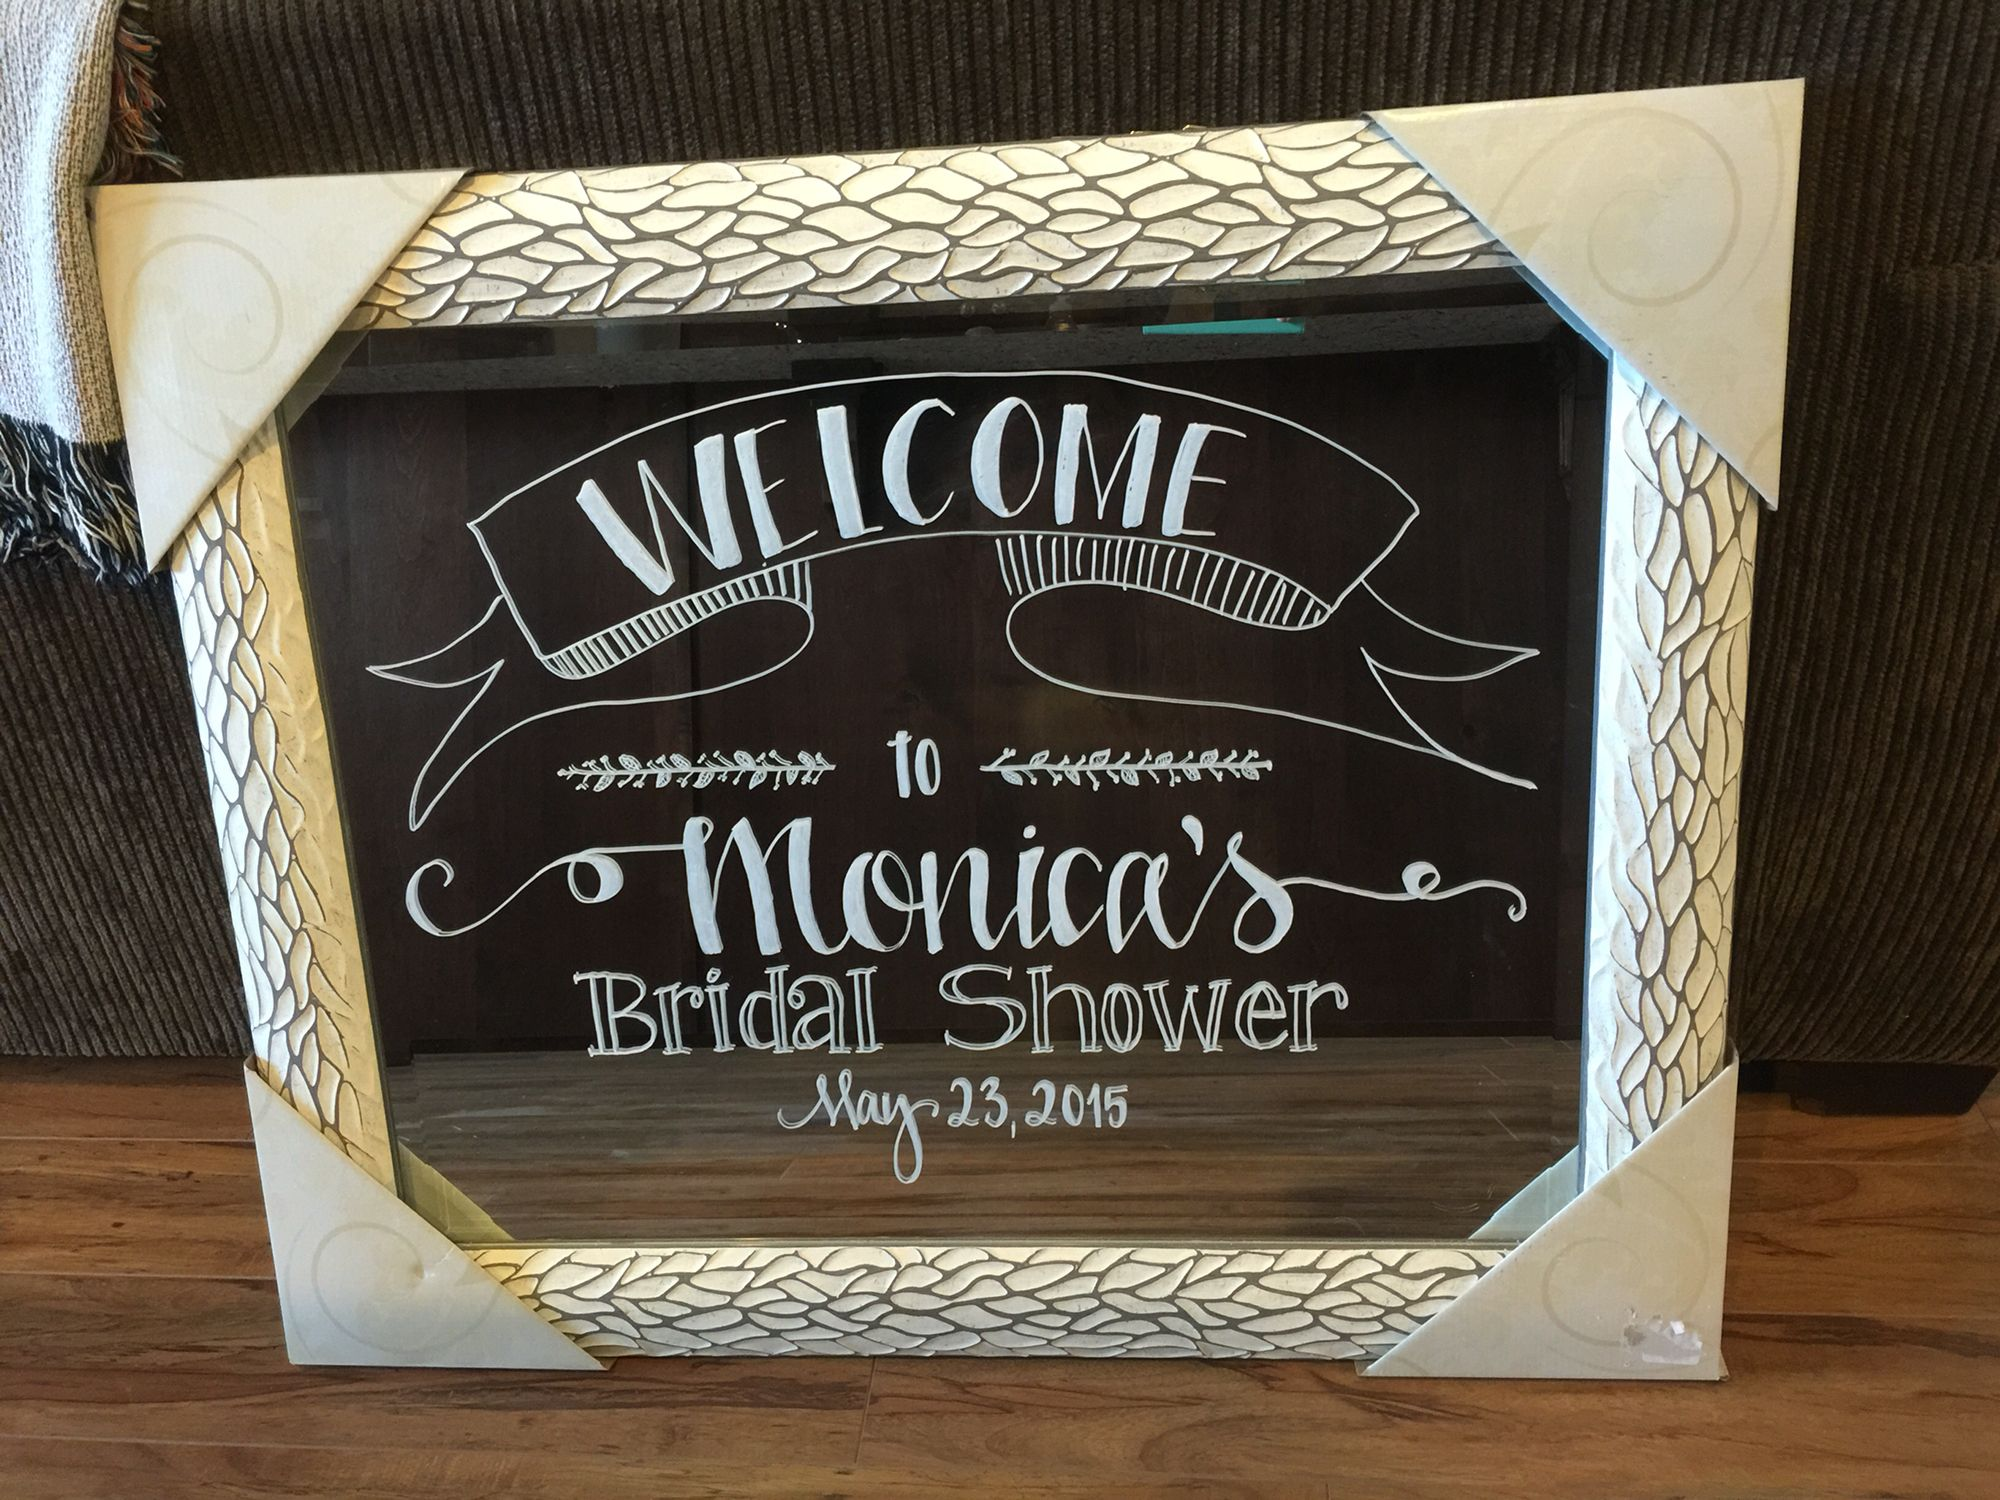 Bridal Shower Welcome Sign On Mirrors  Mirror Wedding. Group Signs. Pneumonia Patient Signs. Towel Signs Of Stroke. Cardiac Signs Of Stroke. Galvanized Signs. Pole Signs. Sanitary Signs. Under Construction Signs Of Stroke